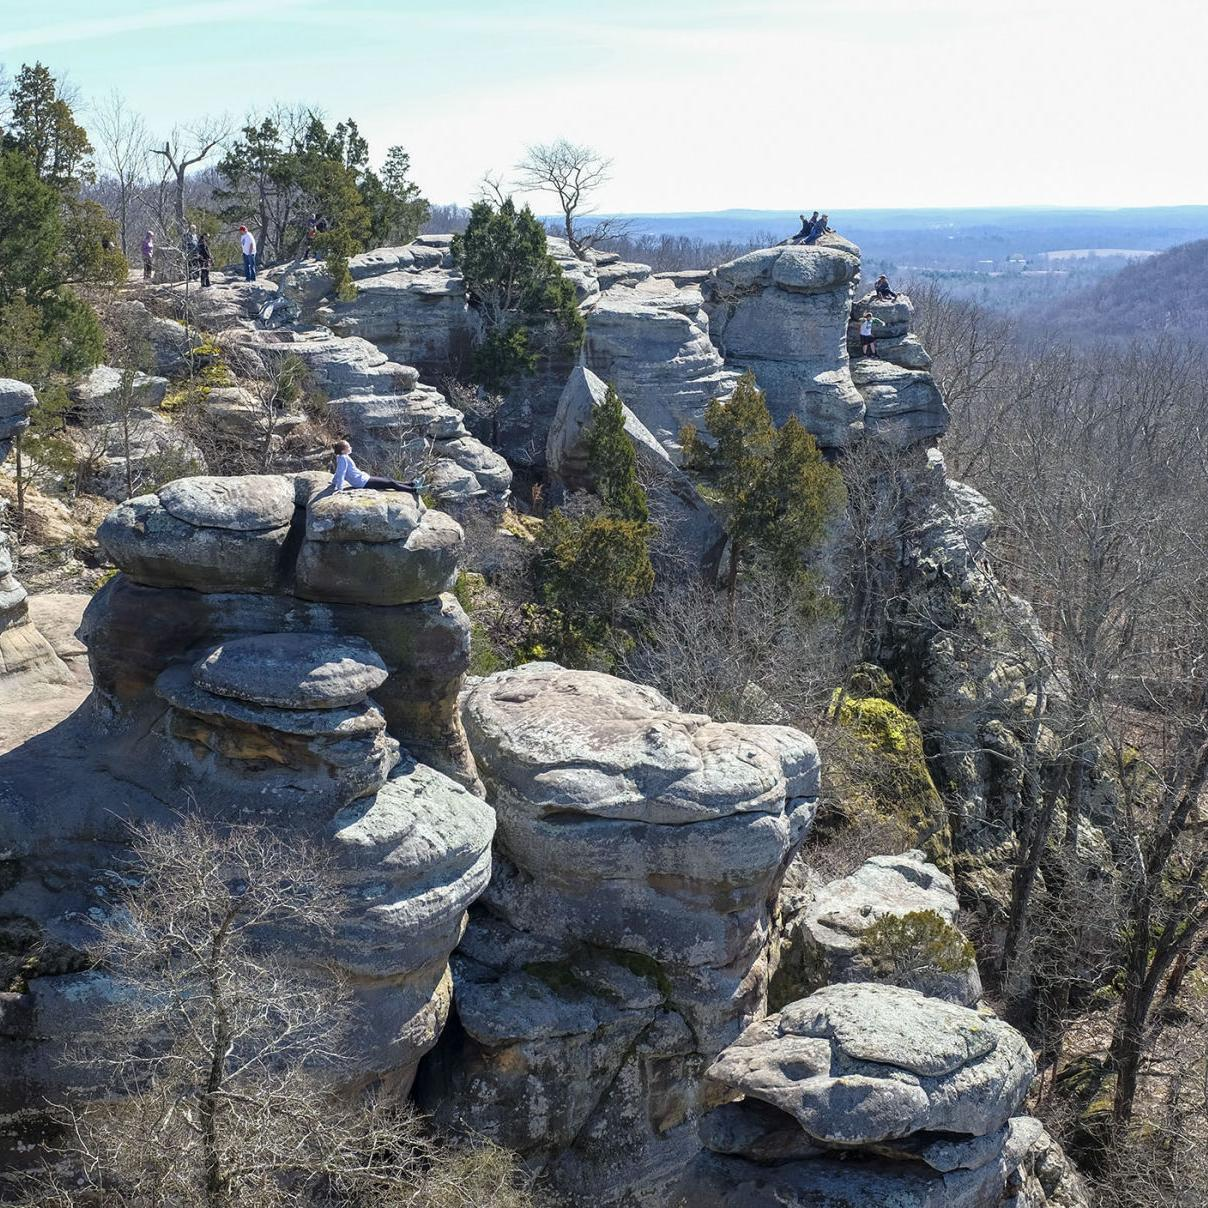 Shawnee National Forest Proposes New 5 Fee To Visit Garden